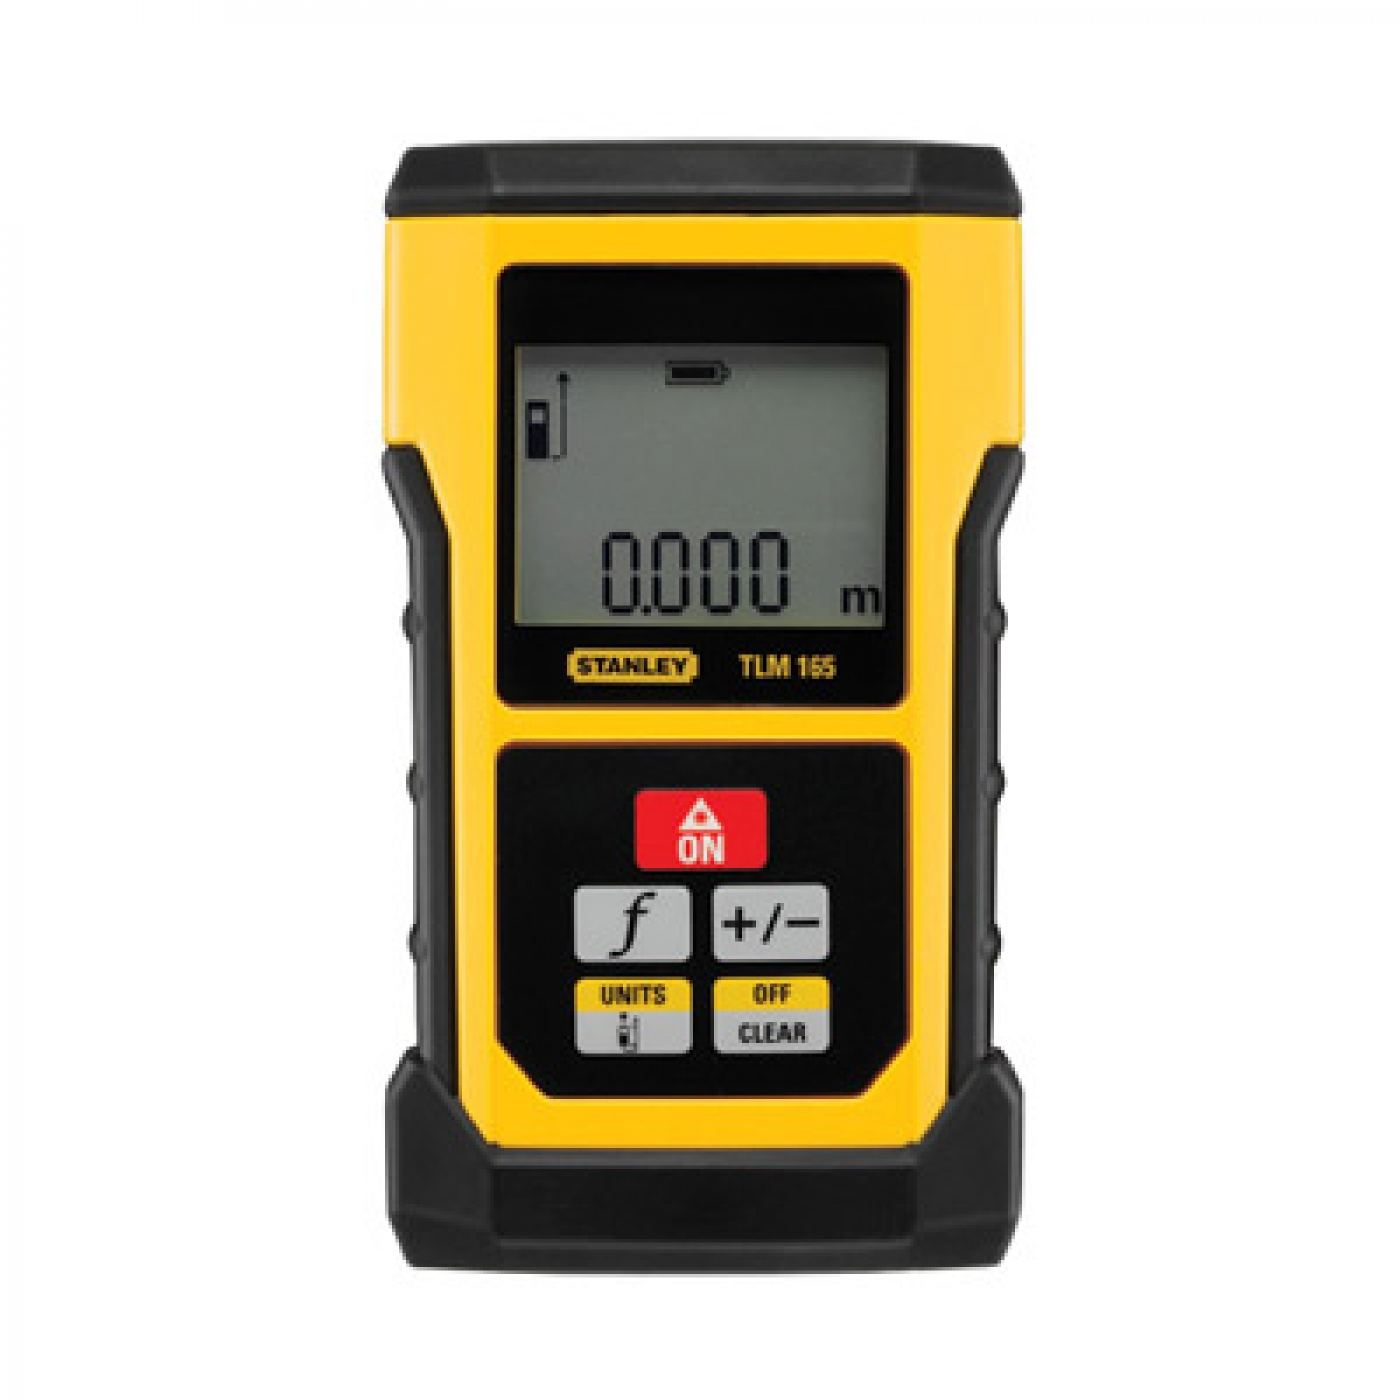 TRUE LASER MEASURE (50M)